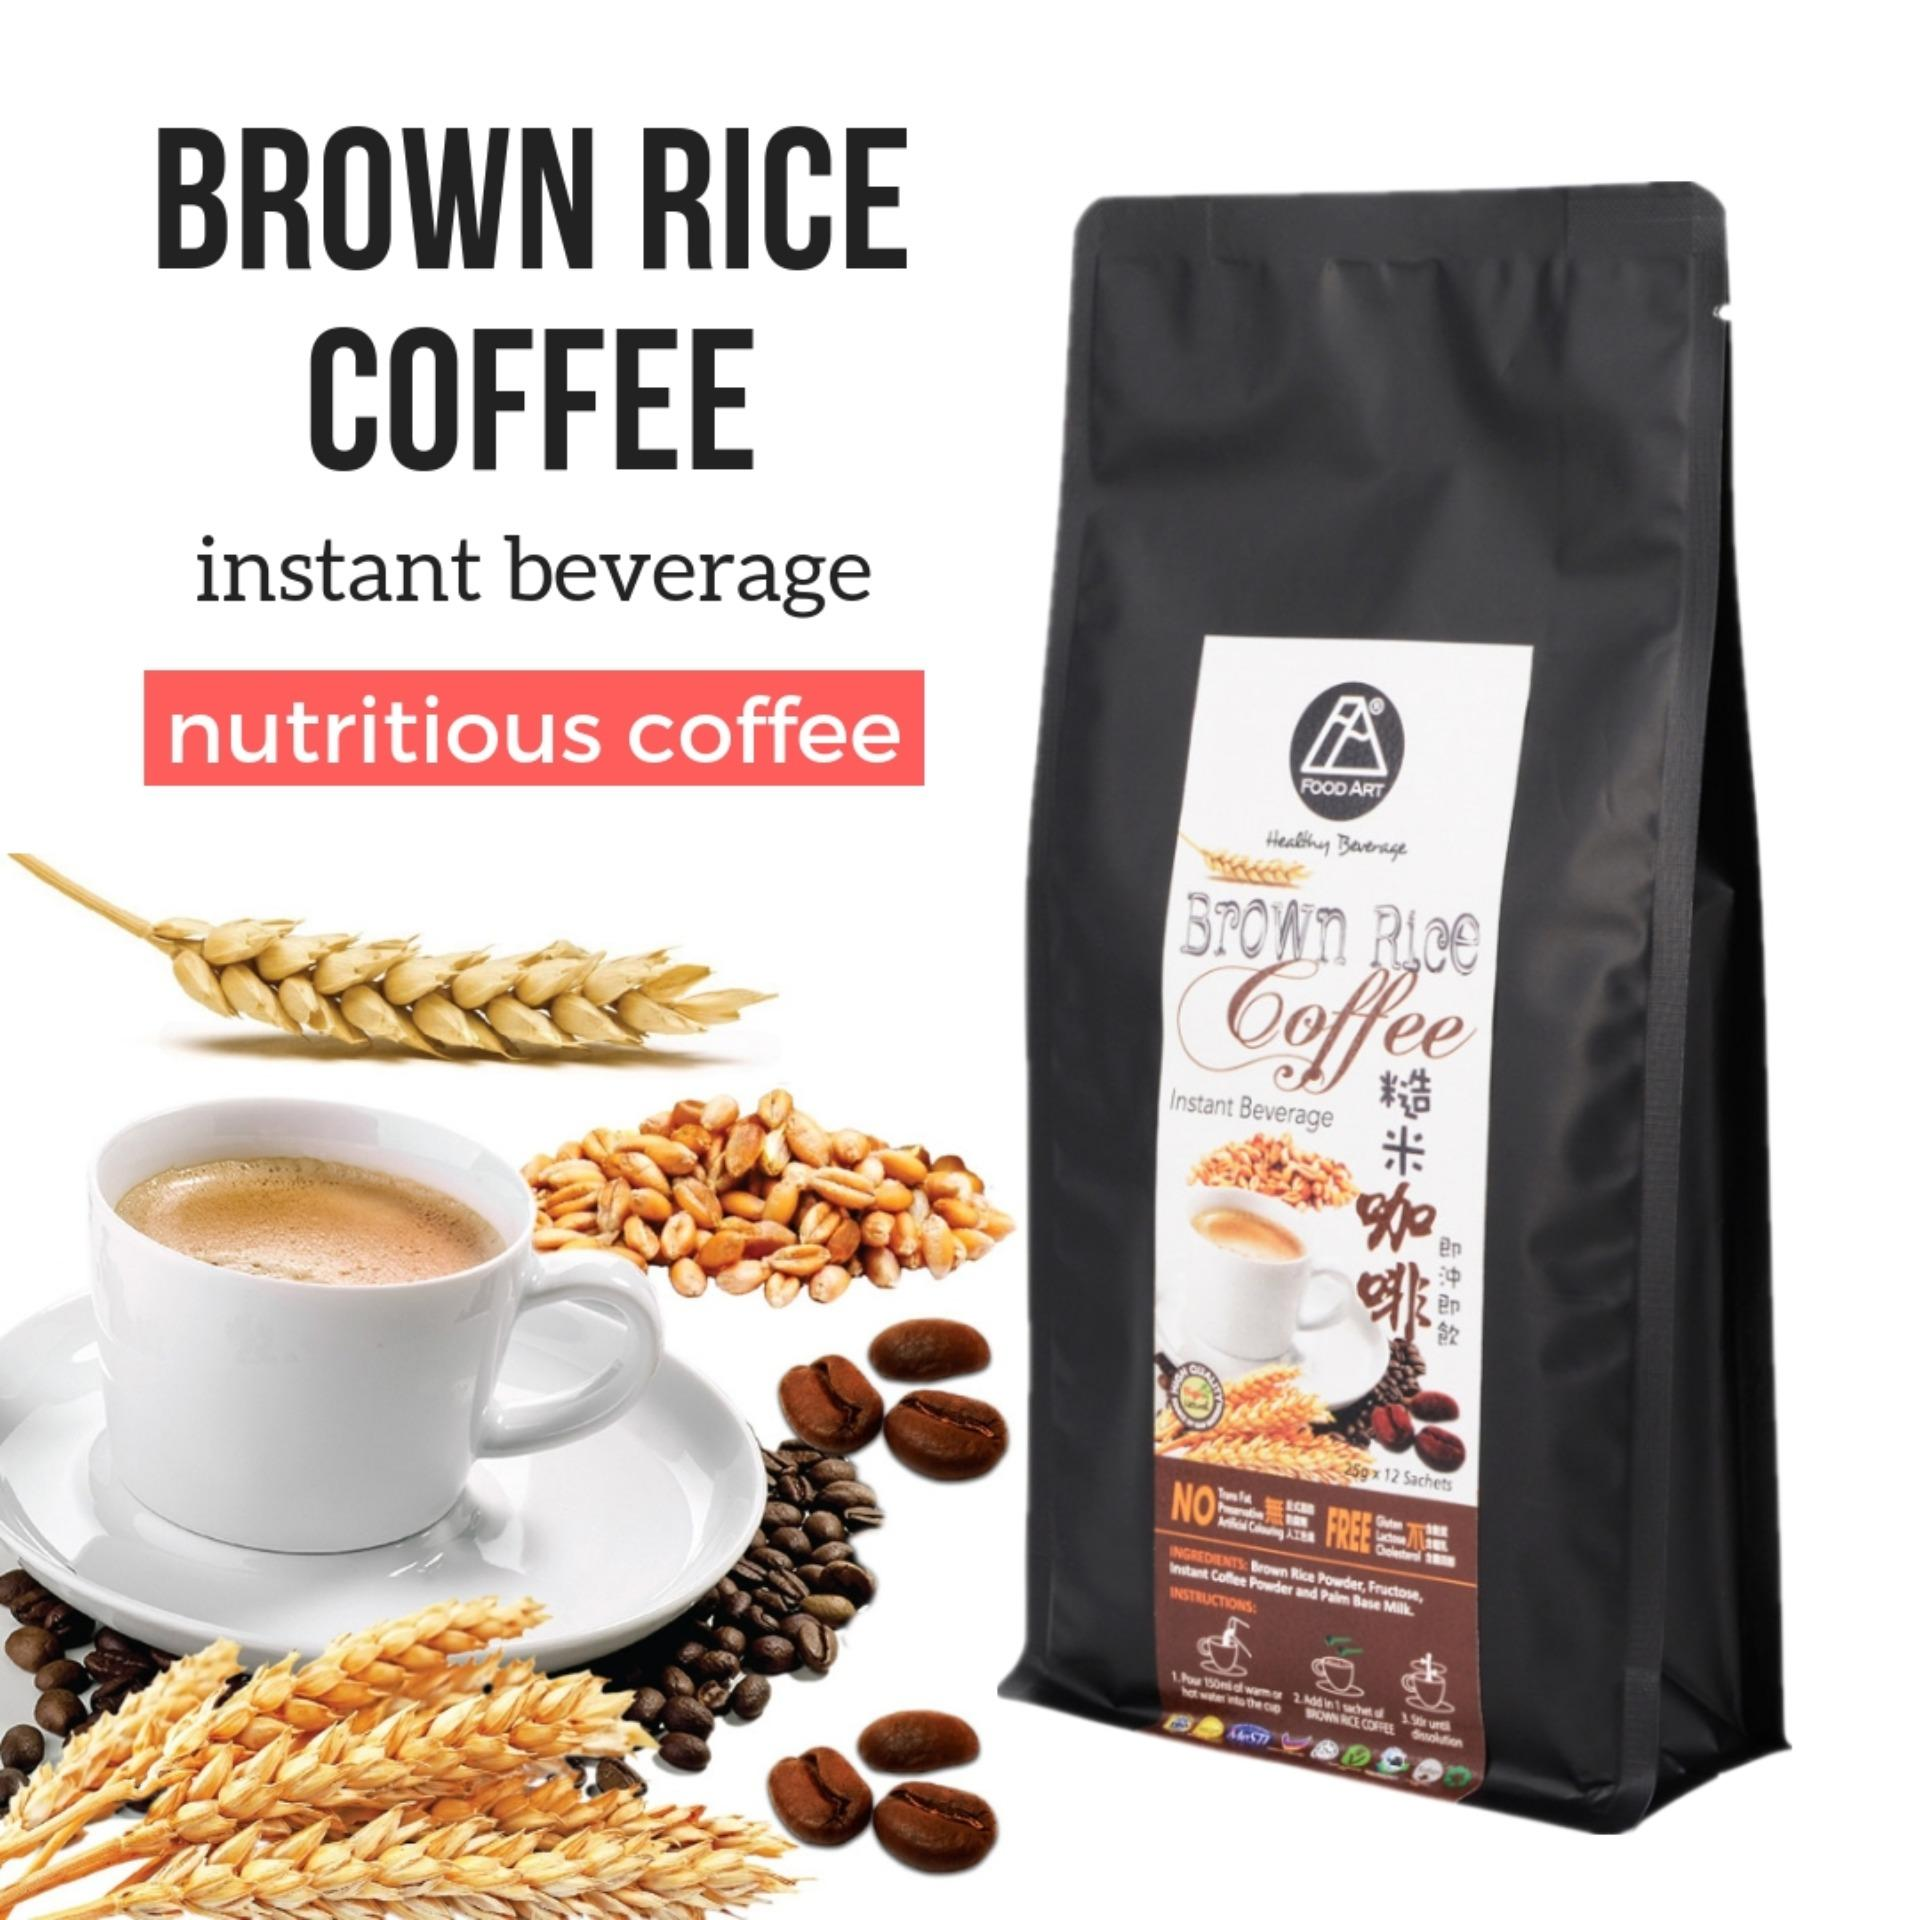 Brown Rice Coffee 25g X 12s By Food Art By Food Art Grocery Singapore.